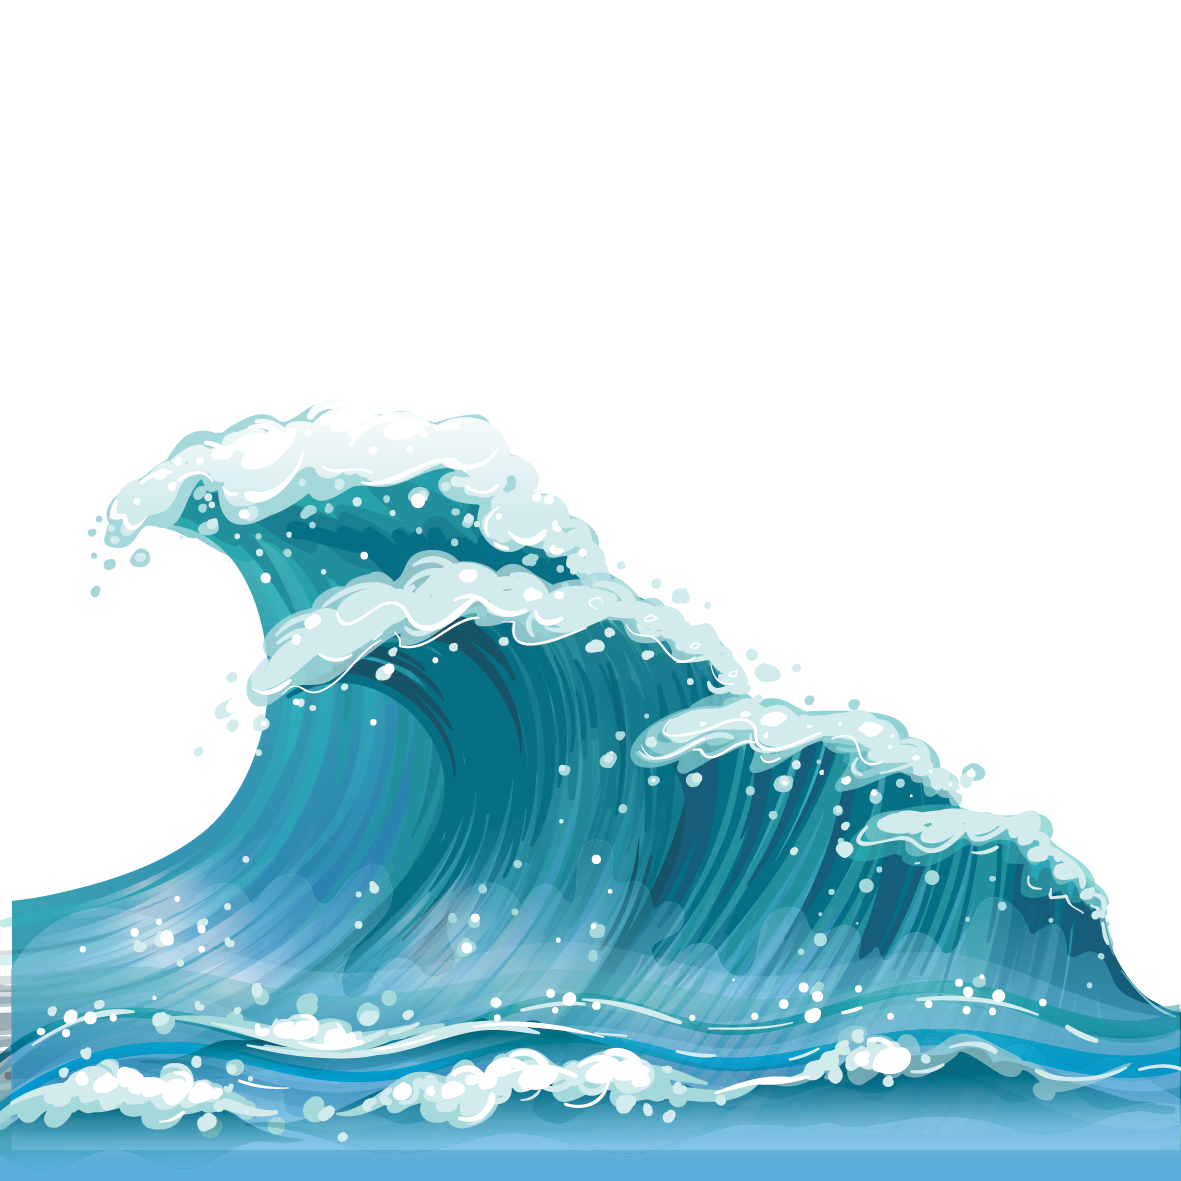 Waves clipart wave vector. Wind clip art material